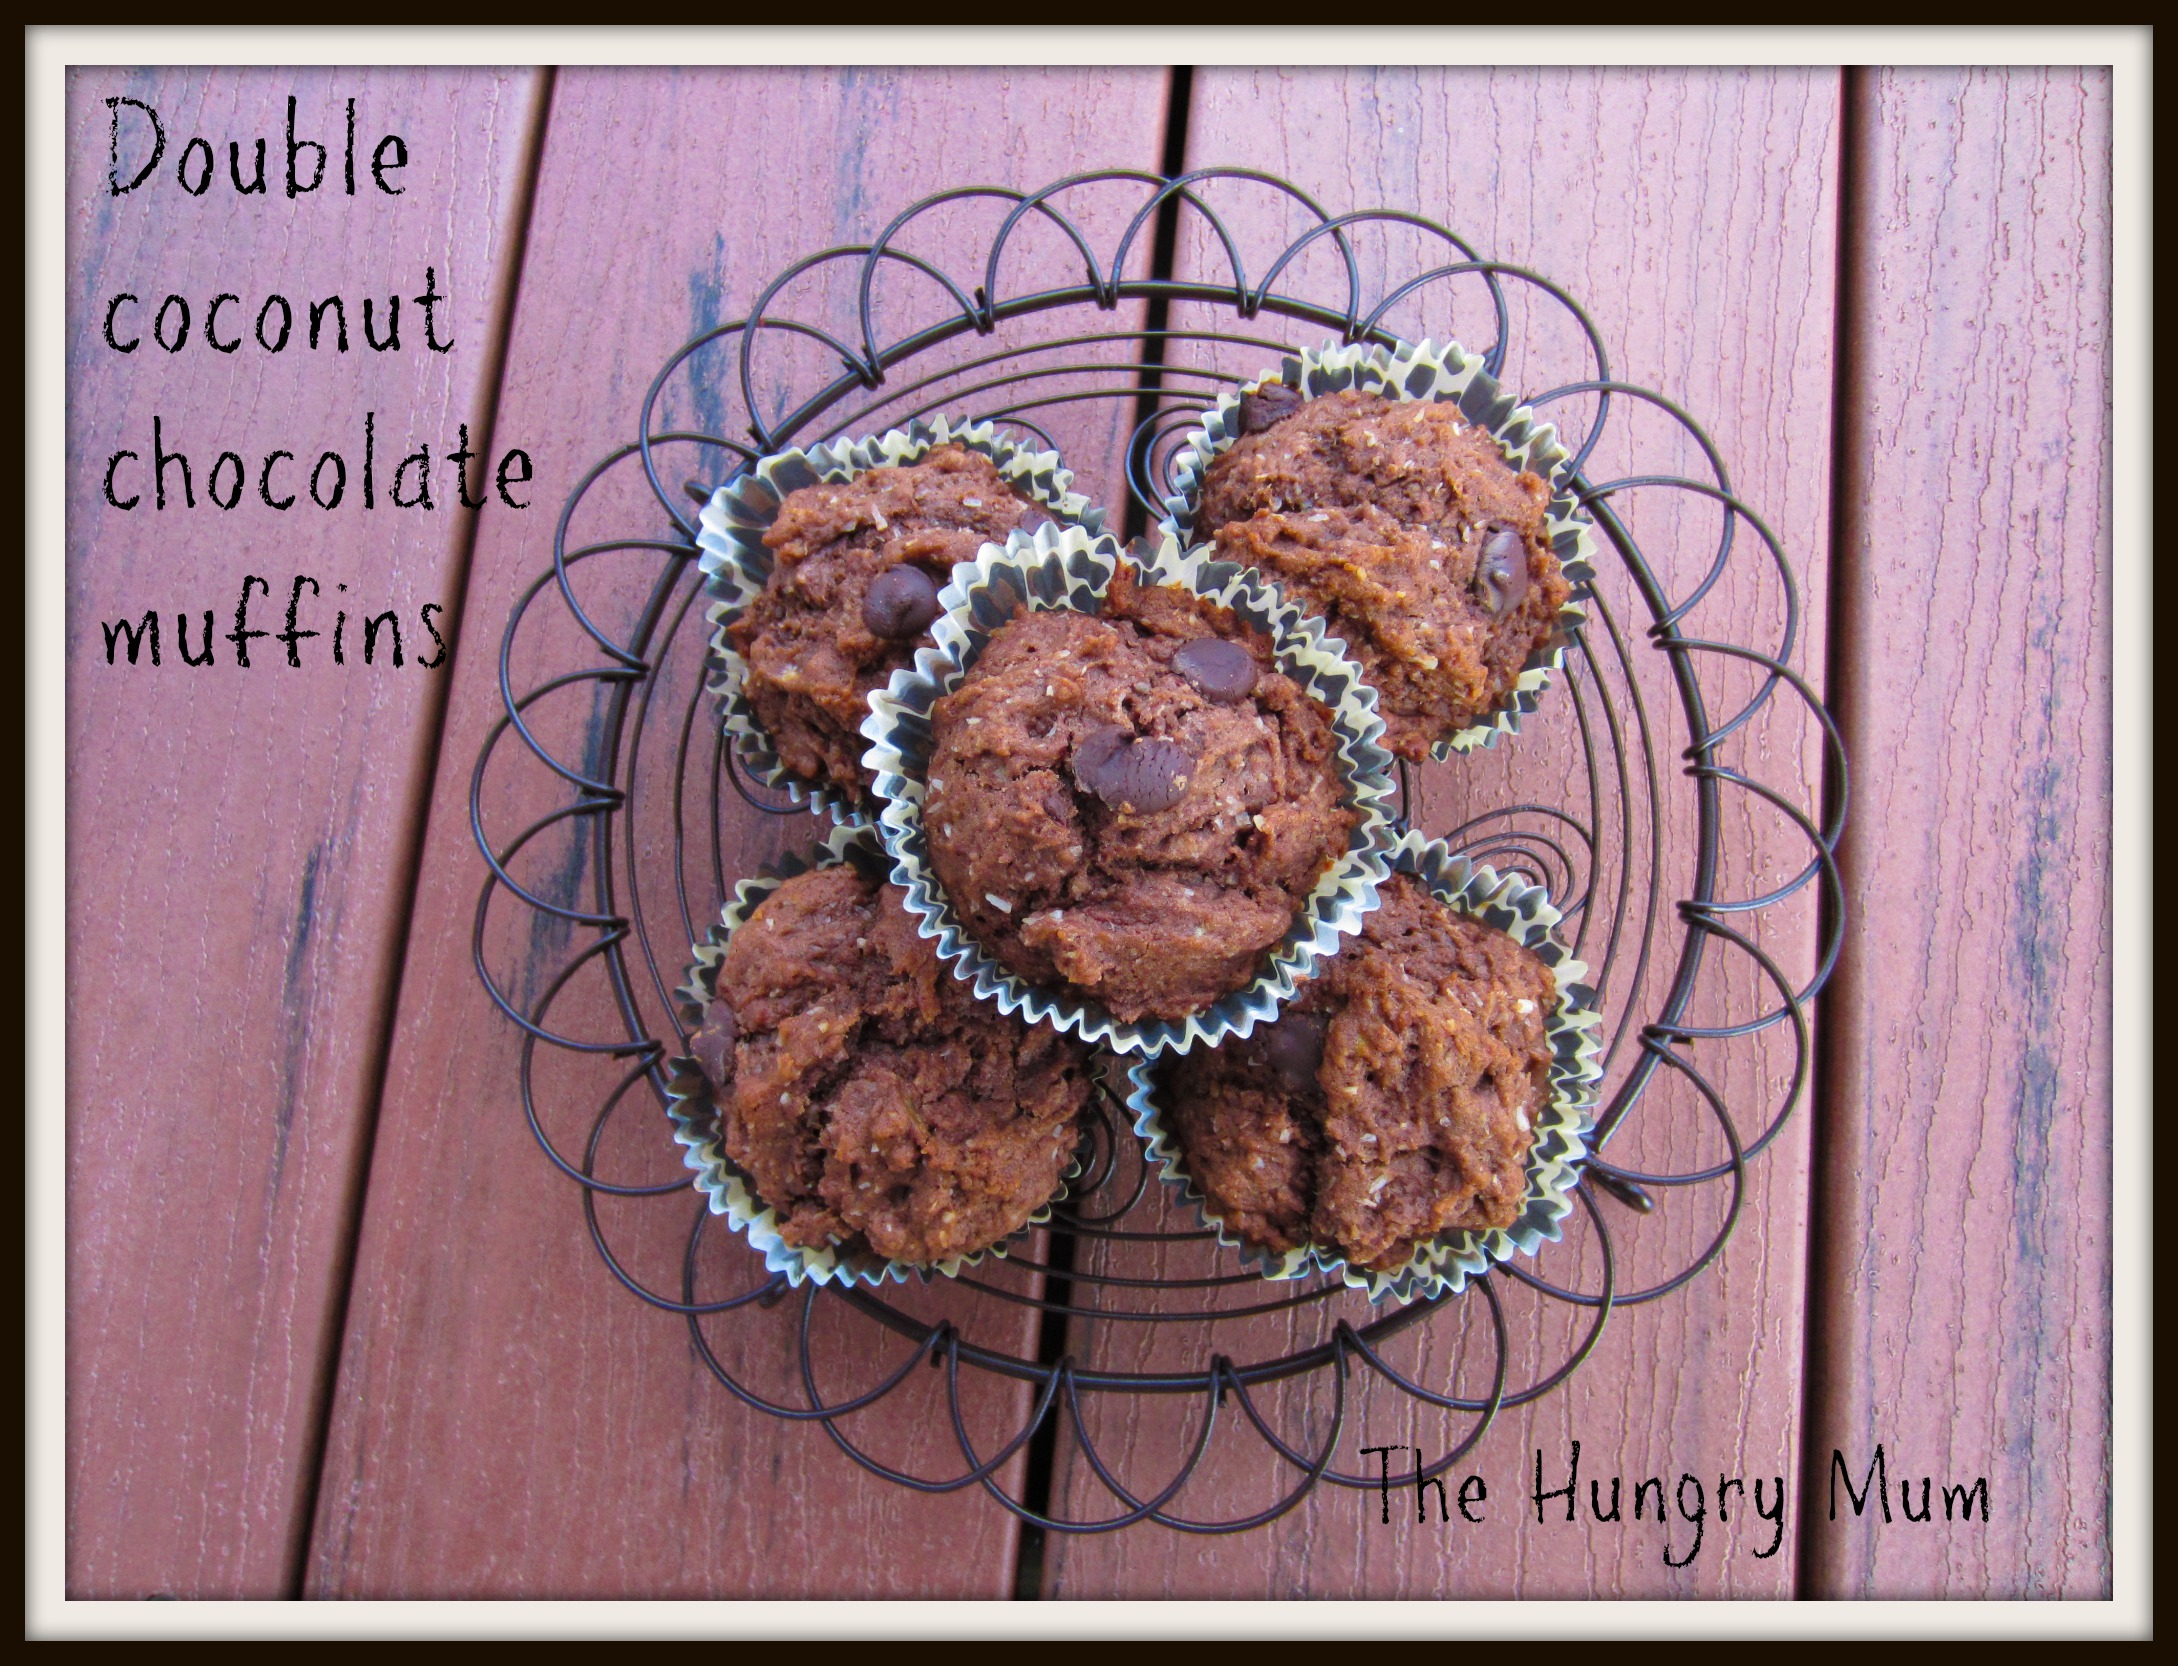 Donna Hay chocolate and double coconut muffins | the hungry mum